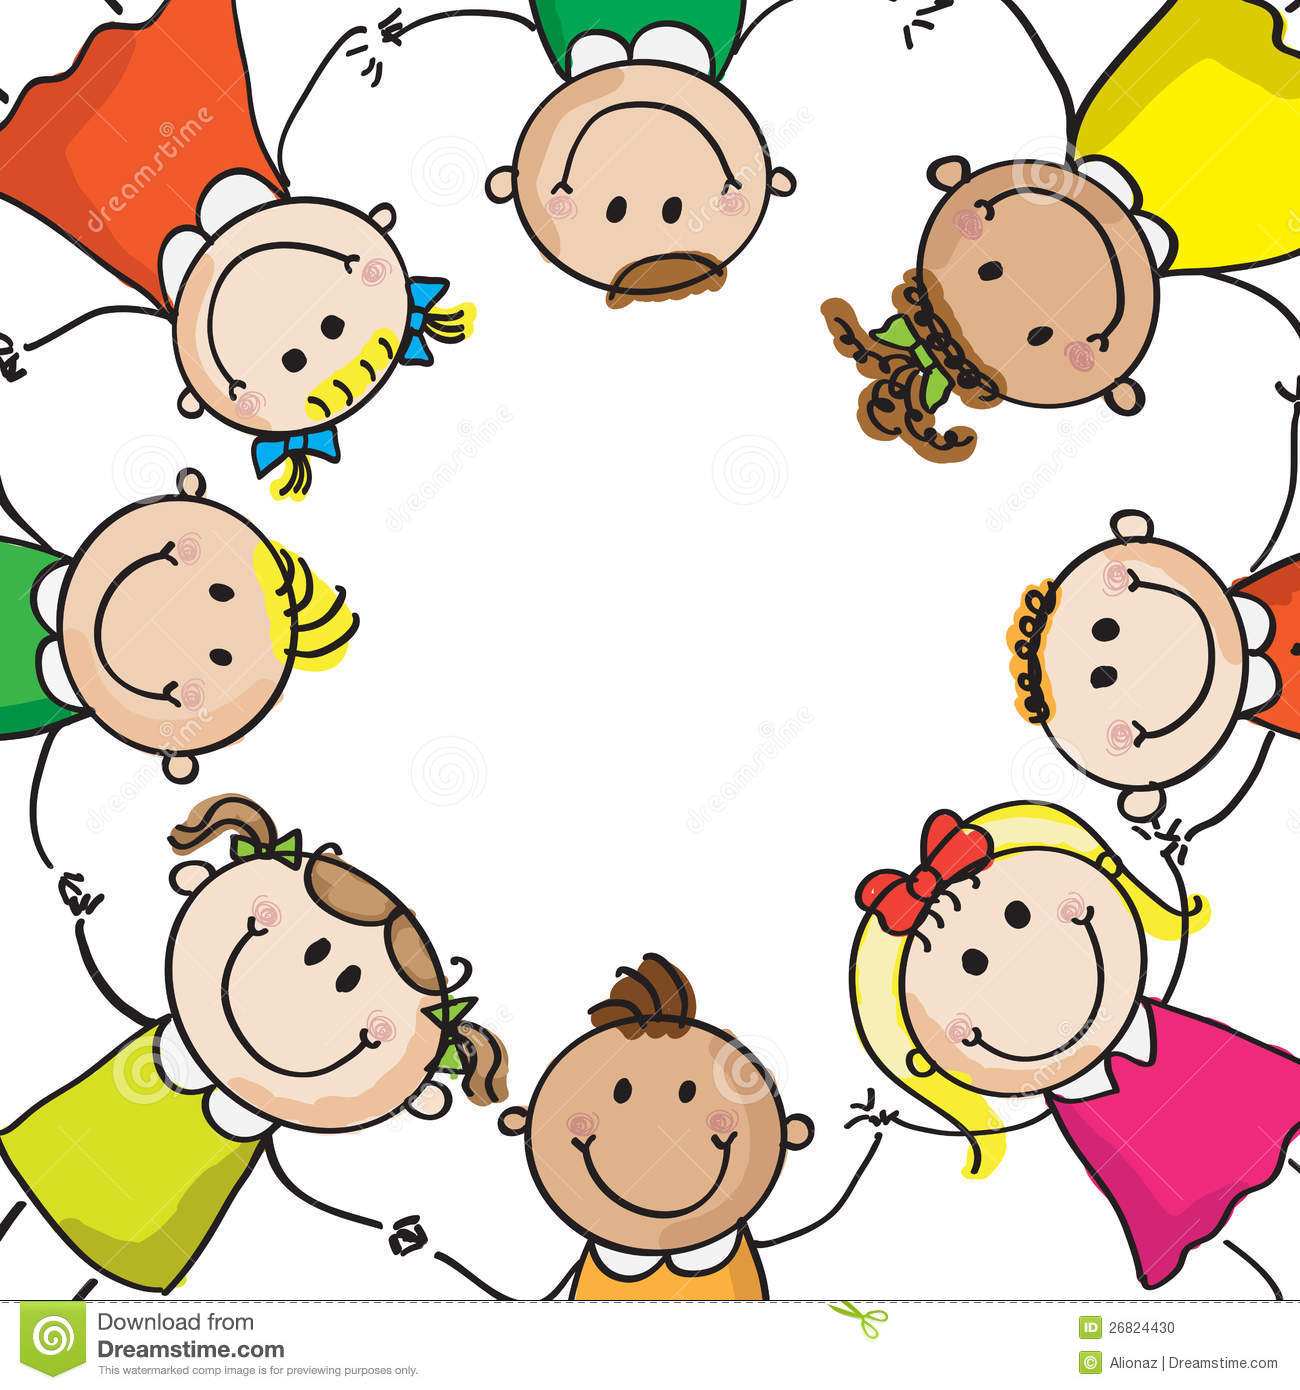 Kinderkreis clipart  Kinder In Einem Kreis Stockfoto - Bild: 26824430